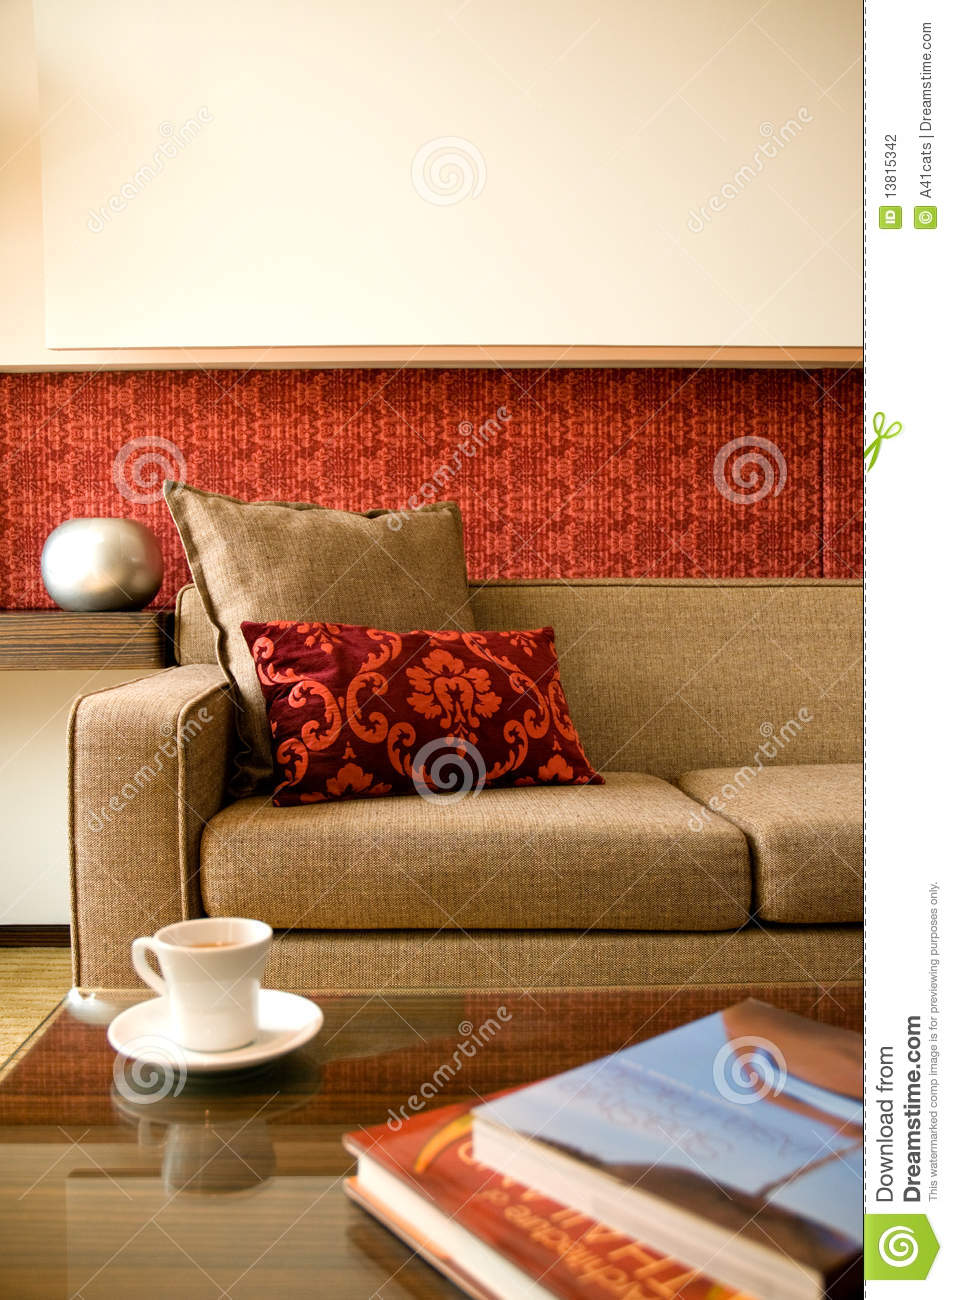 Hotel Room Photography: Hotel Suite Living Room With Interior Design Stock Photo